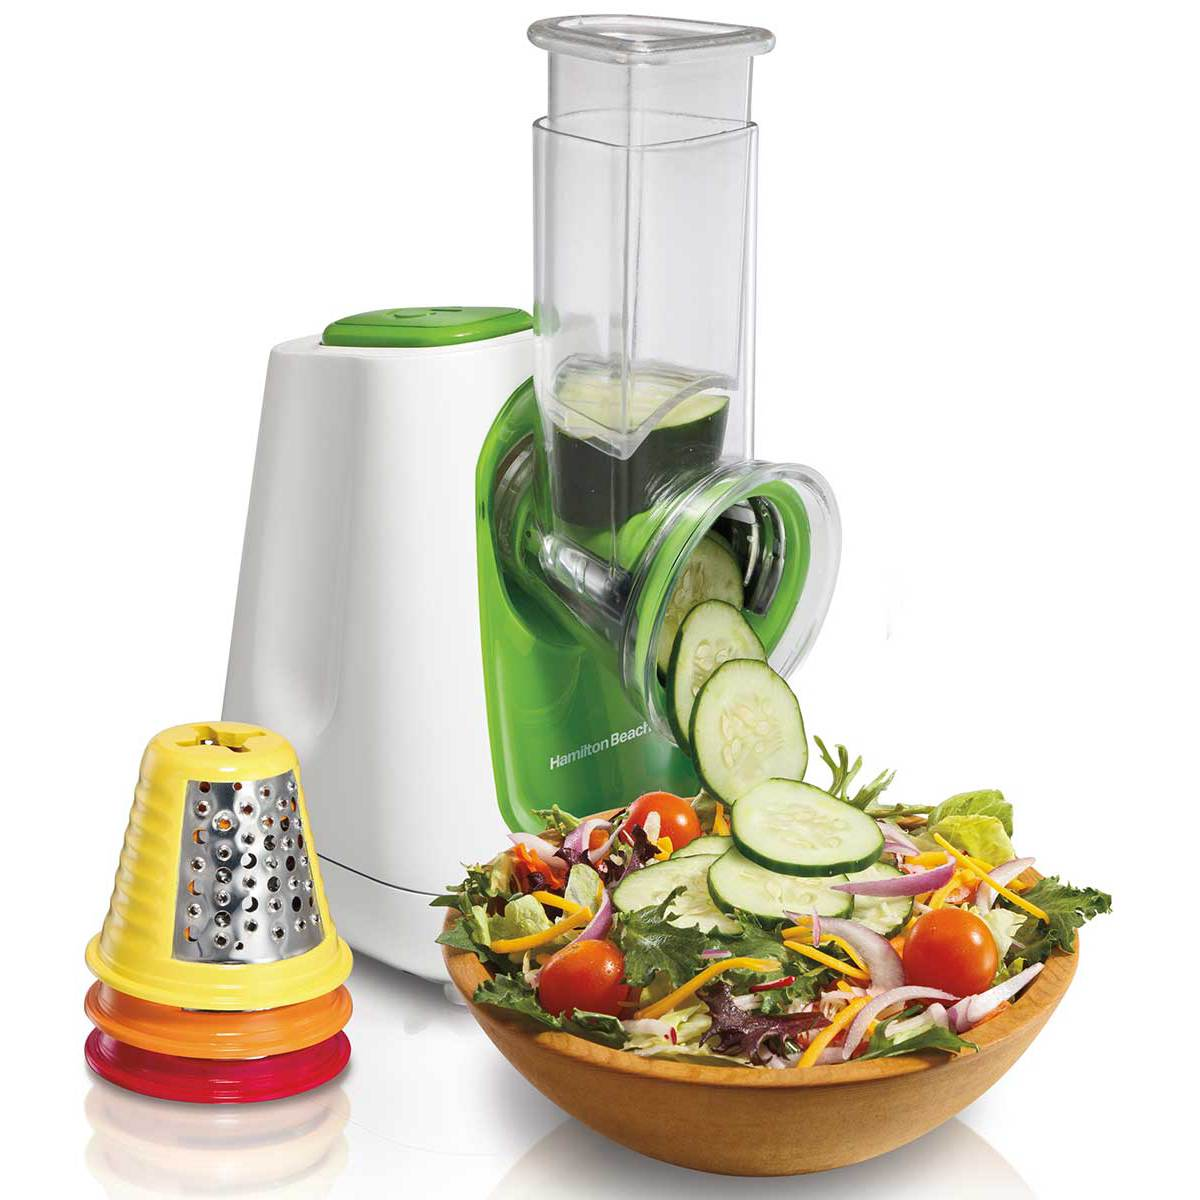 SaladXpress™ Food Processor with 4 Cones (70950)